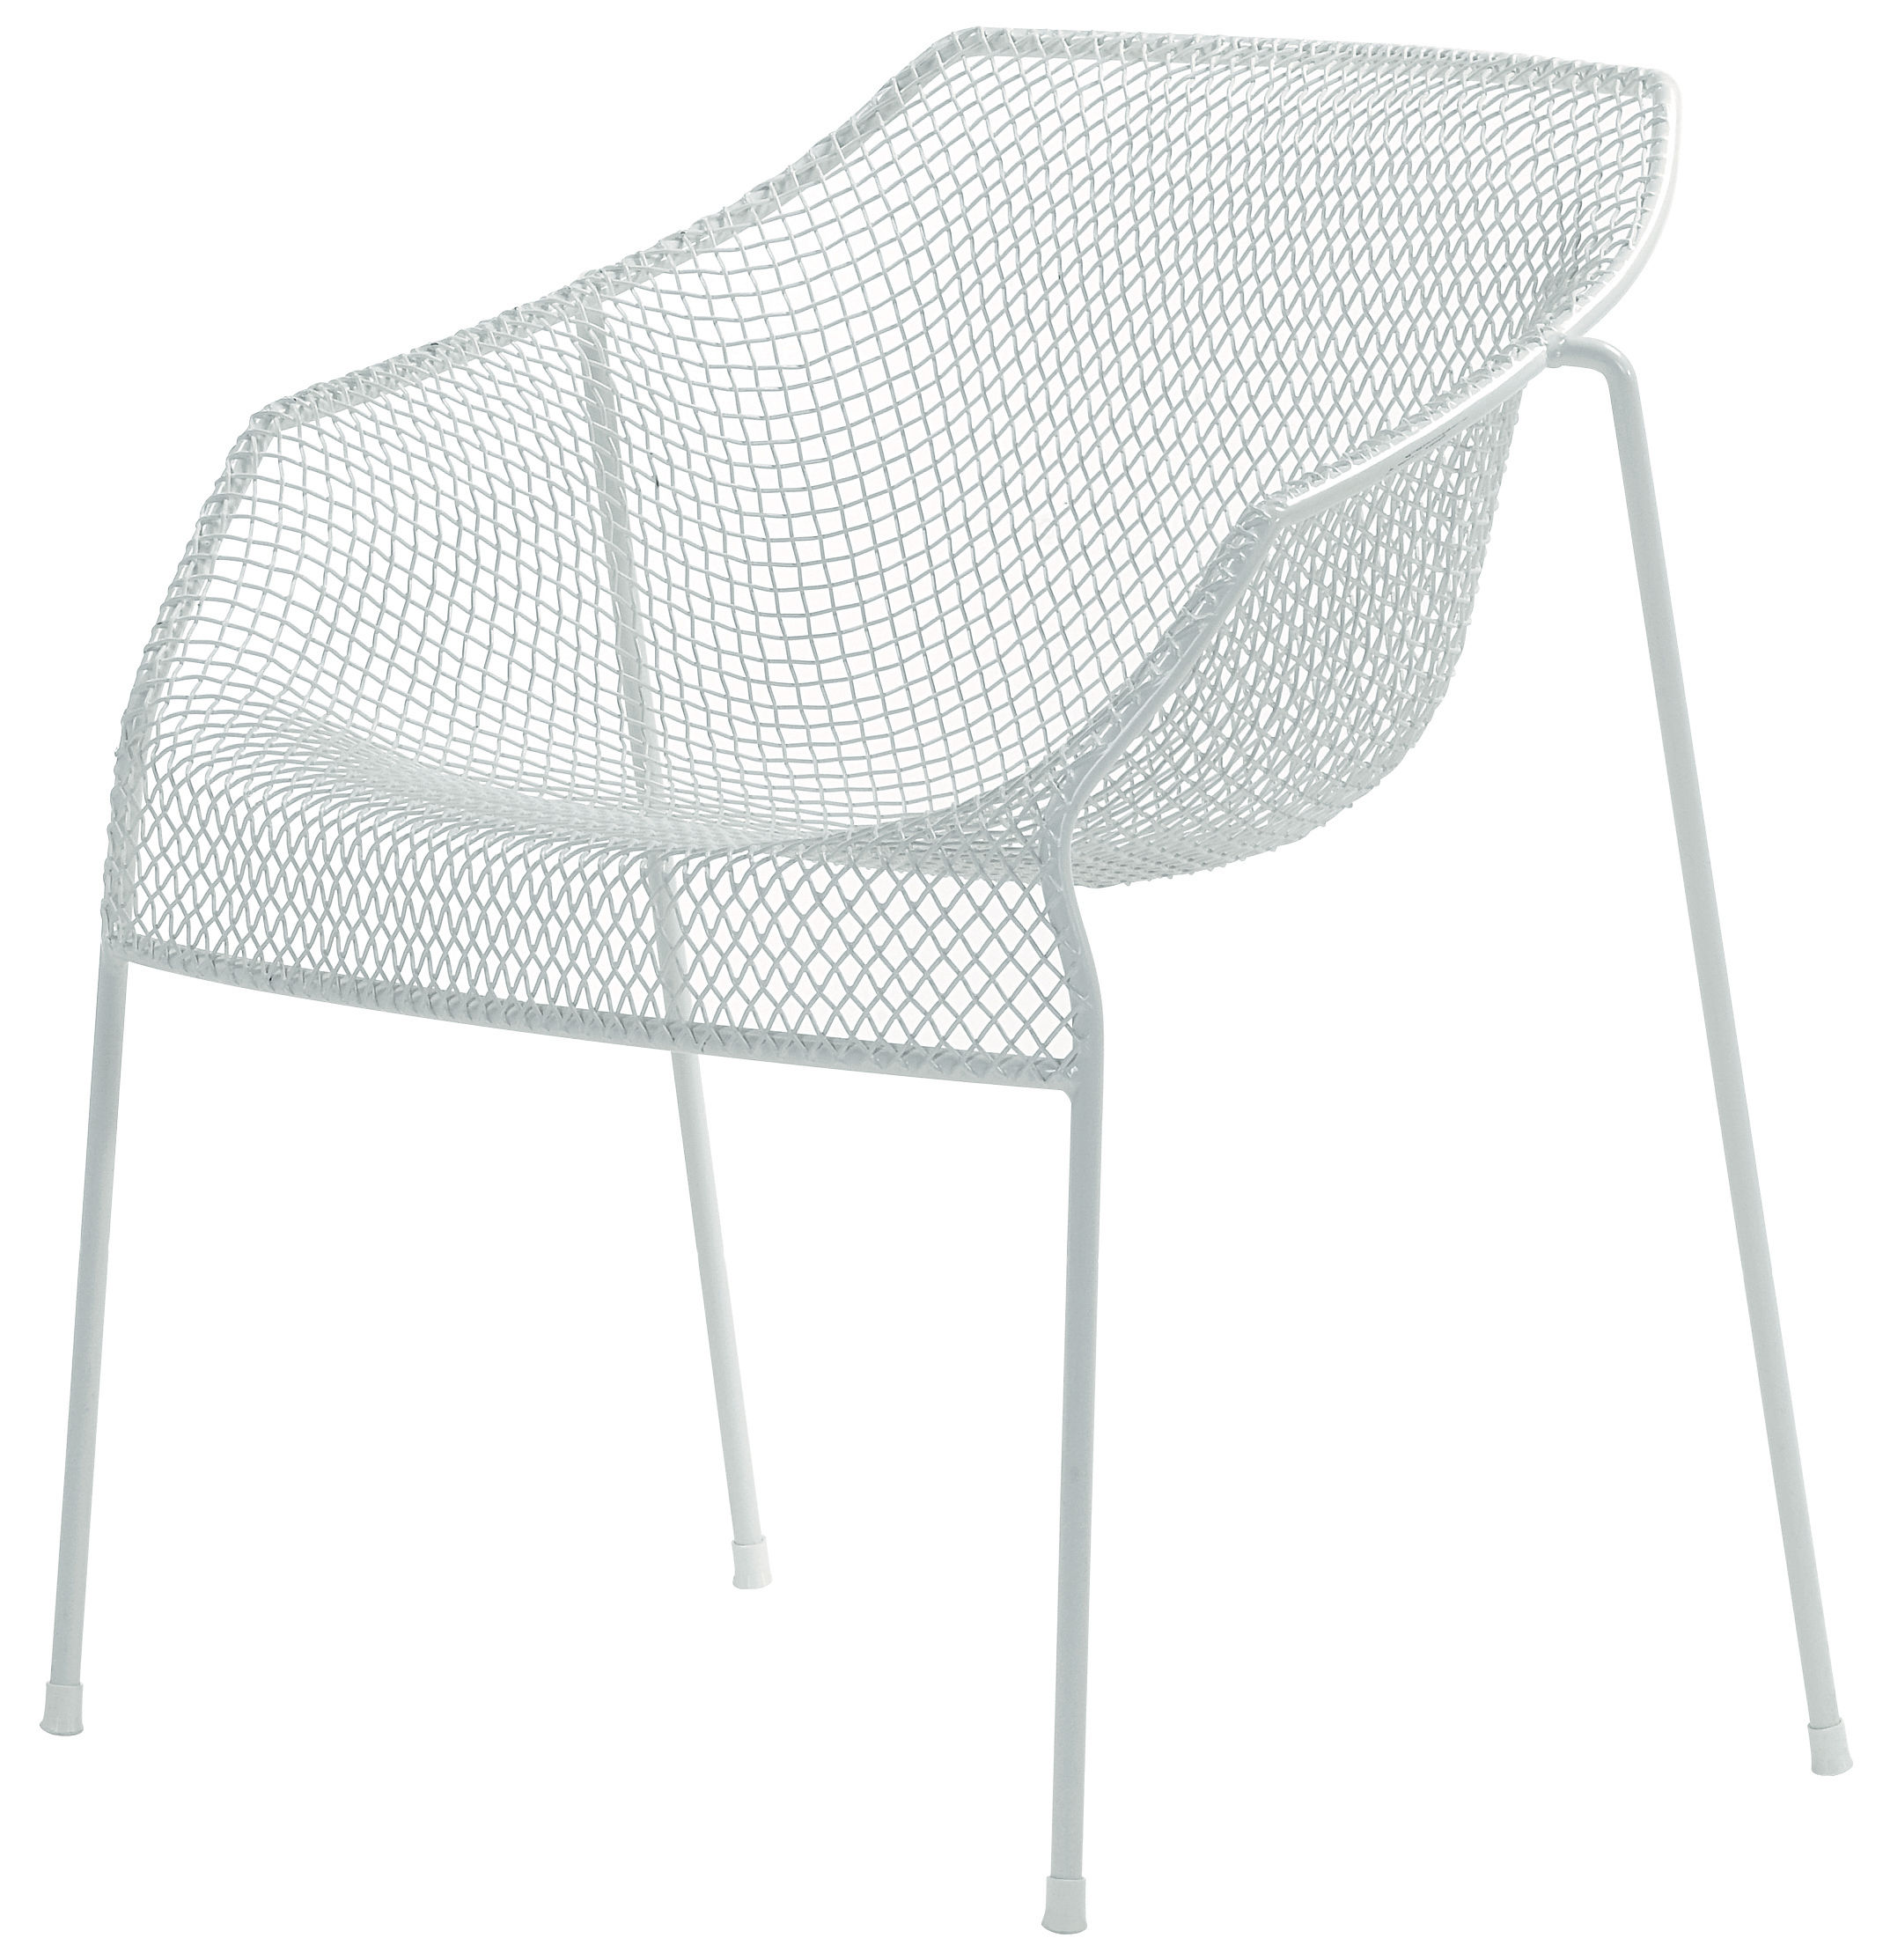 Furniture - Chairs - Heaven Stackable armchair - Metal by Emu - Matt white - Steel